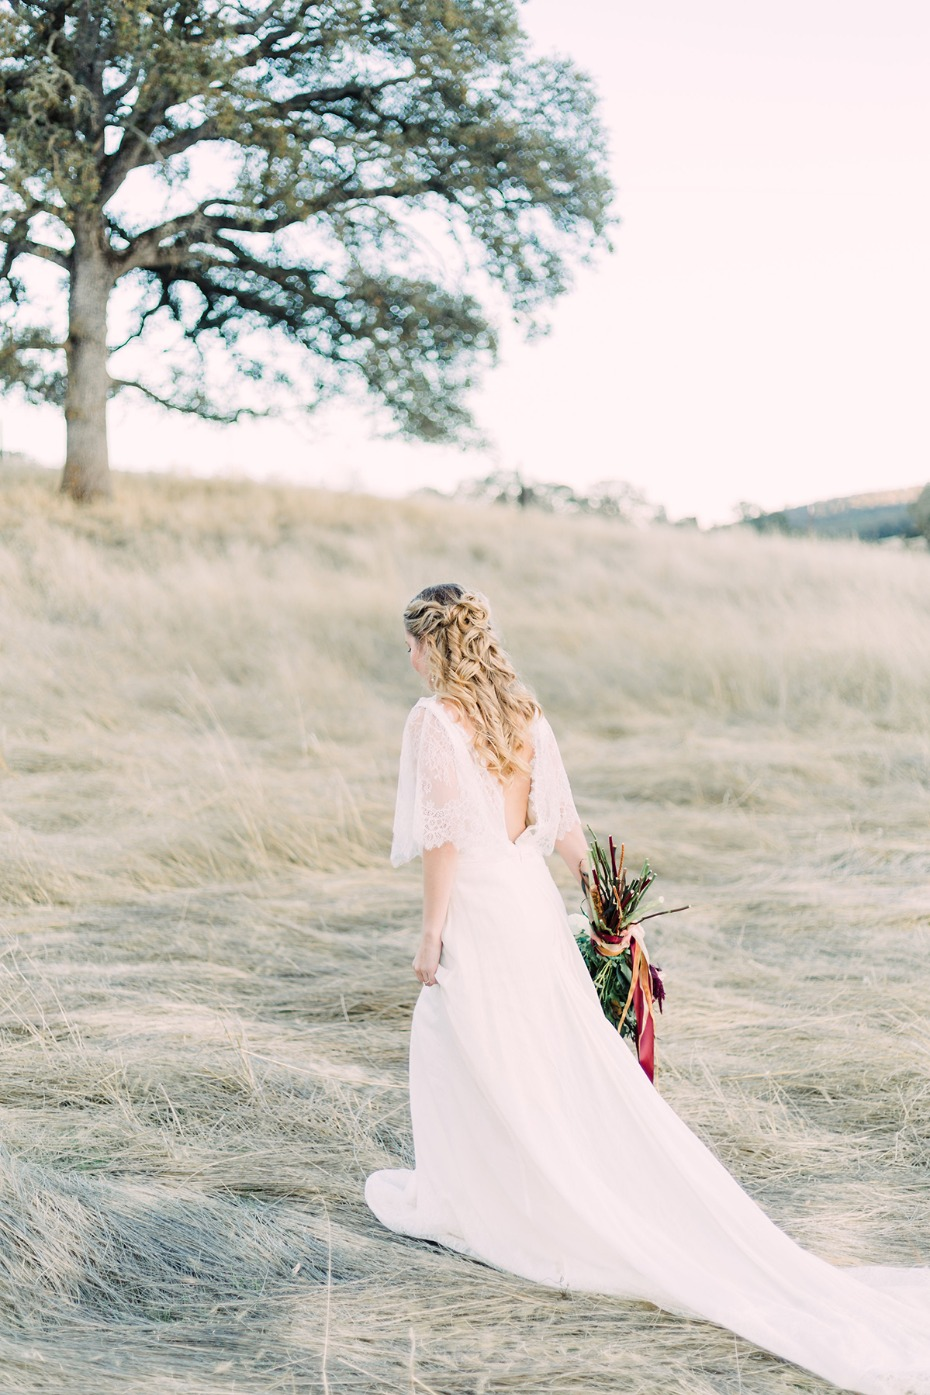 Low back wedding dress from High Vibe Brides